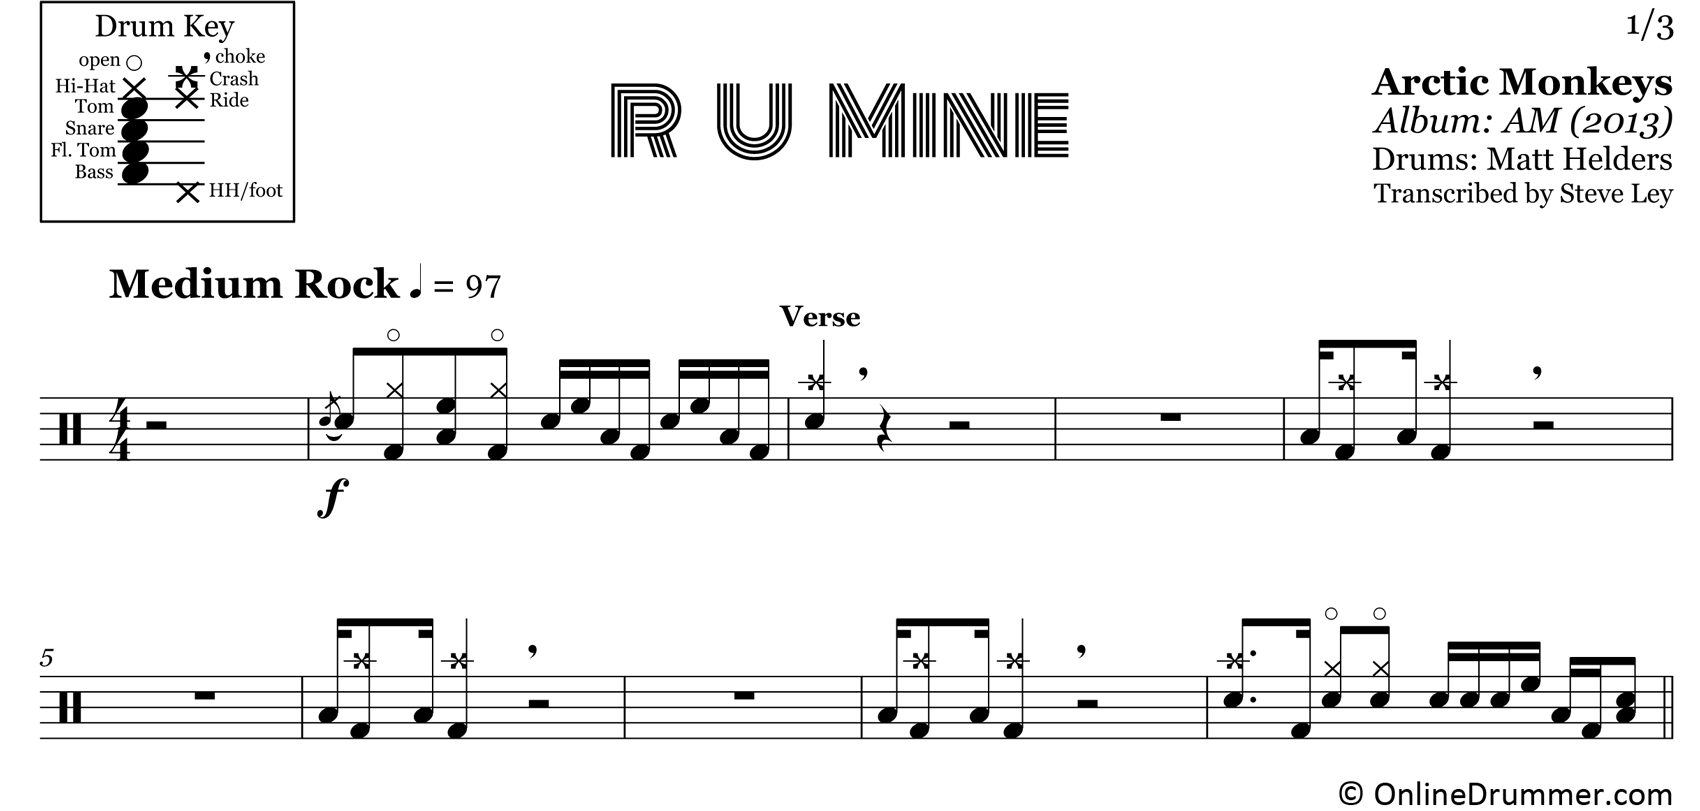 R U Mine - Arctic Monkeys - Drum Sheet Music